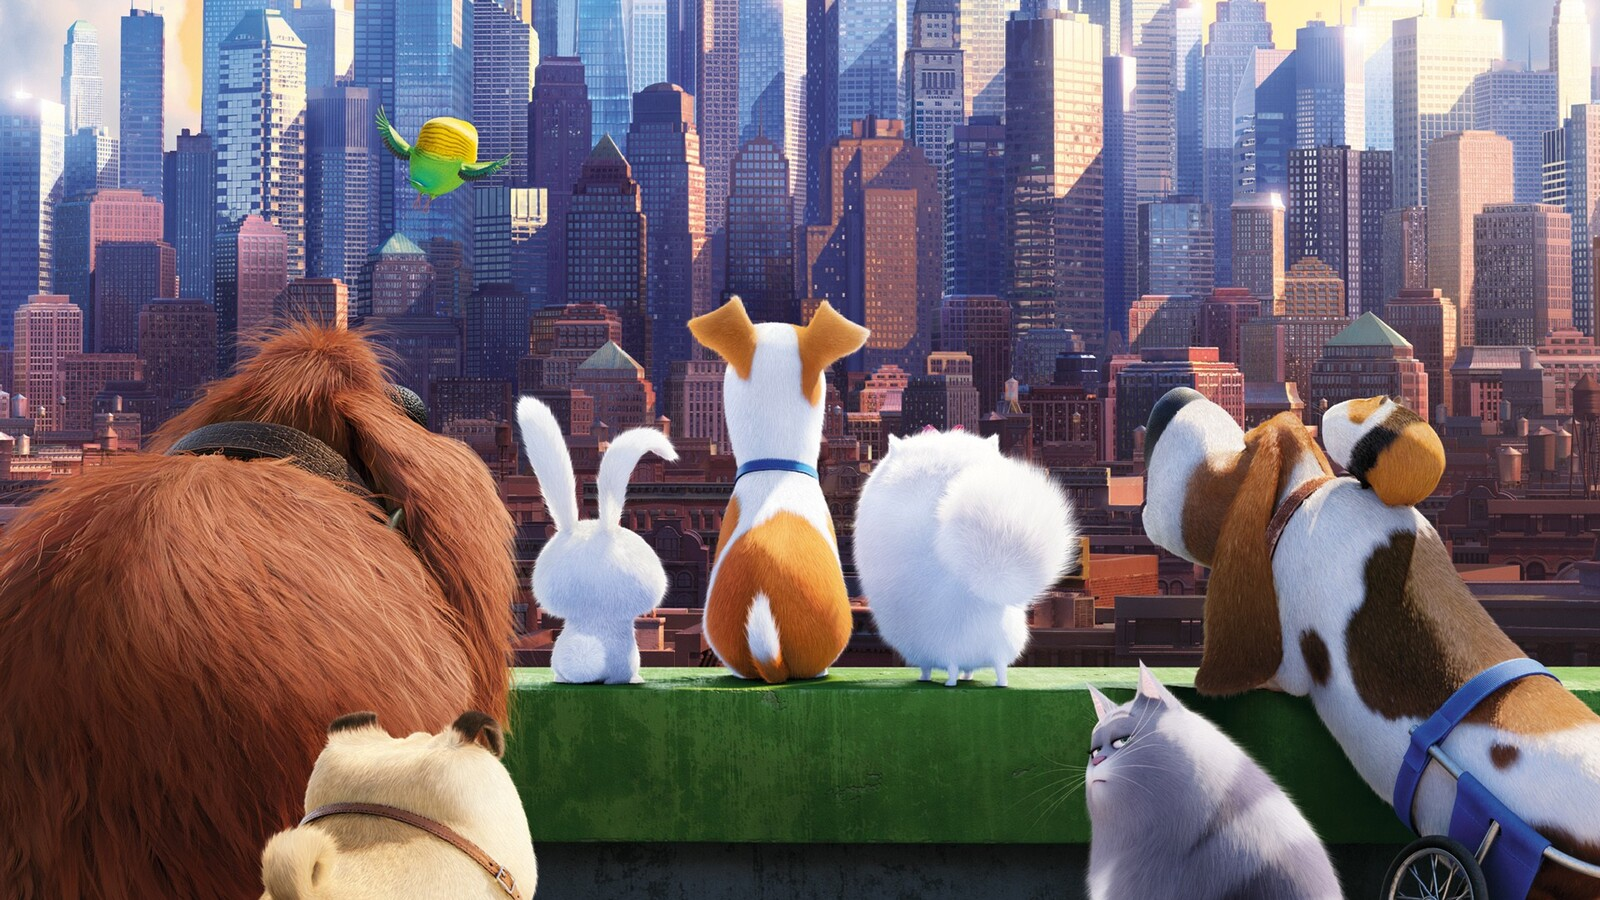 Secret Life Of Pets Wallpaper: 1600x900 The Secrete Life Of Pets Movie 1600x900